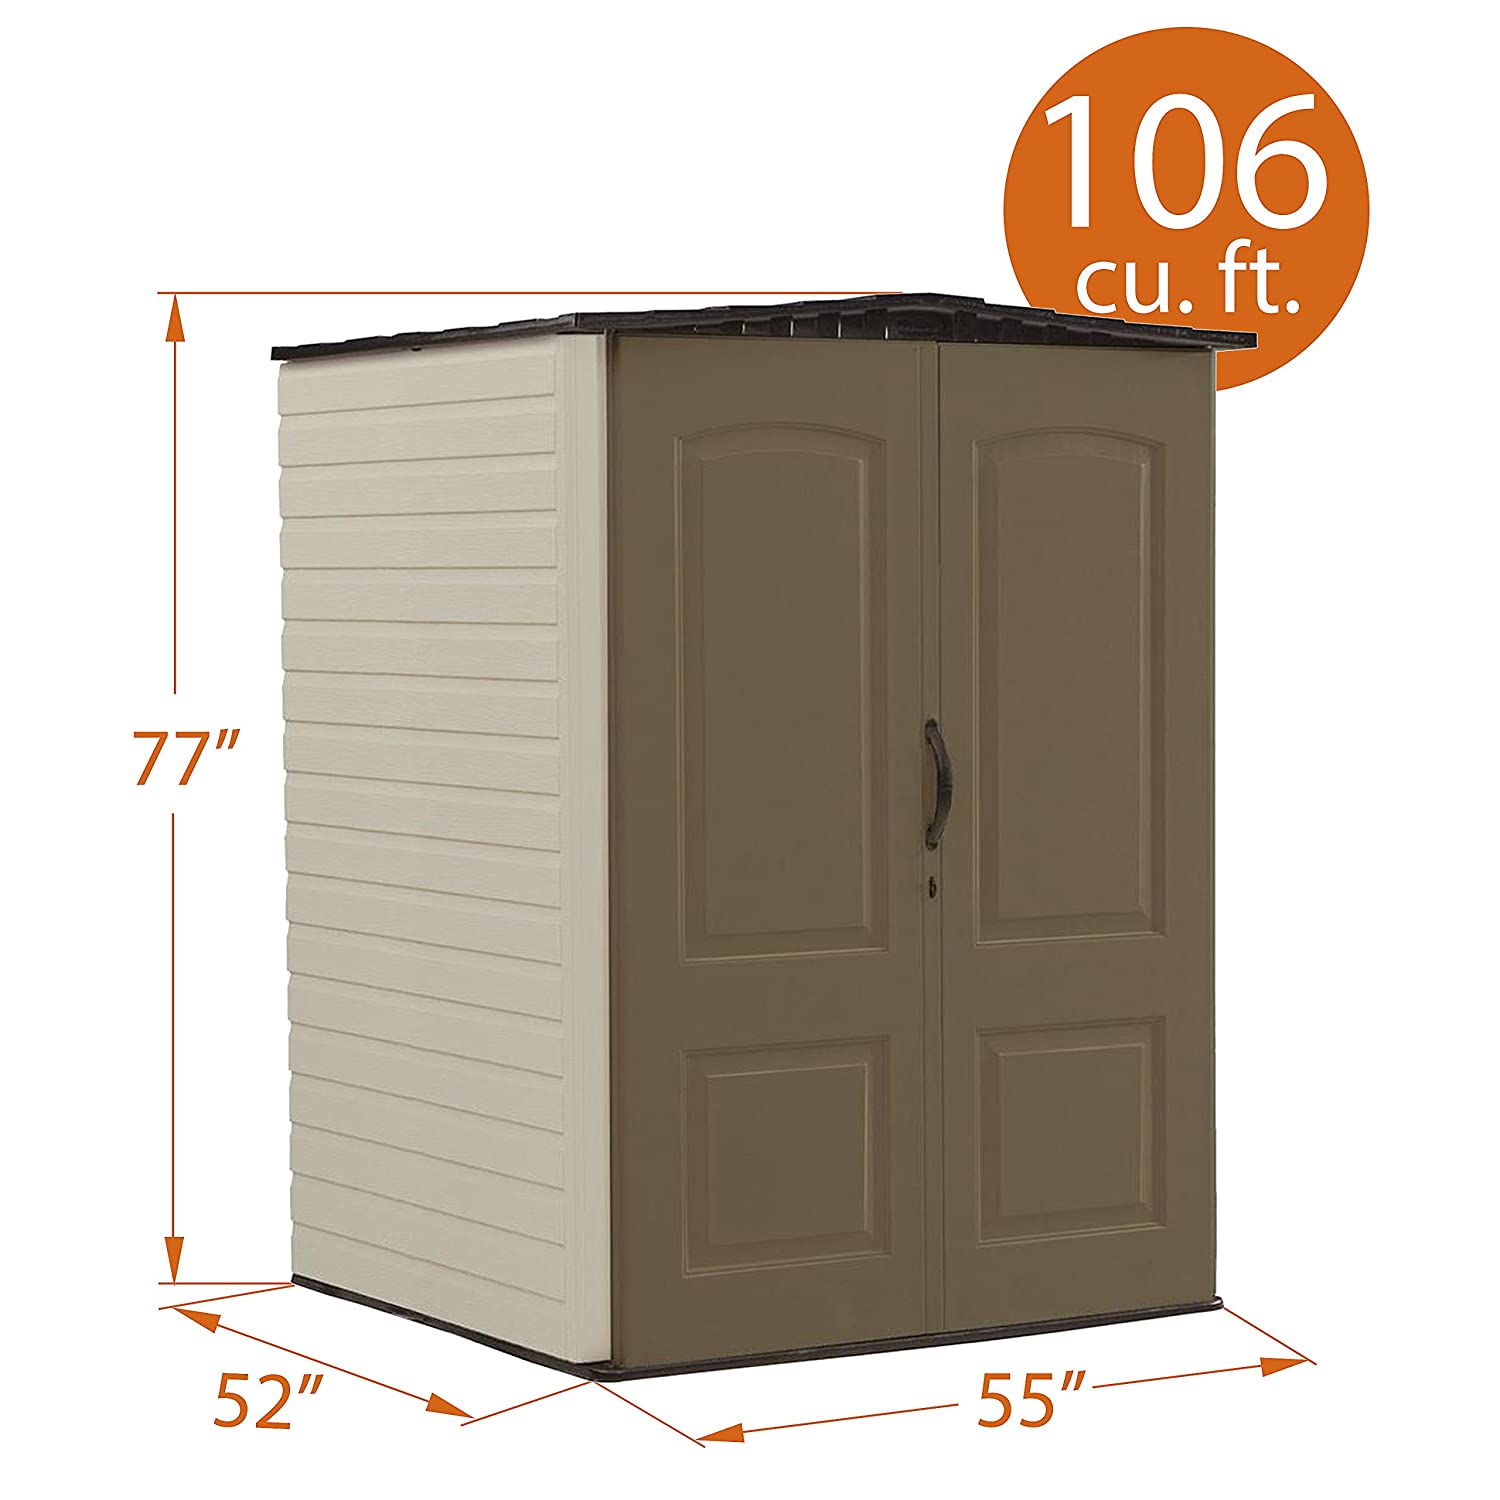 Rubbermaid Outdoor Vertical Storage Shed Plastic 17 Cu